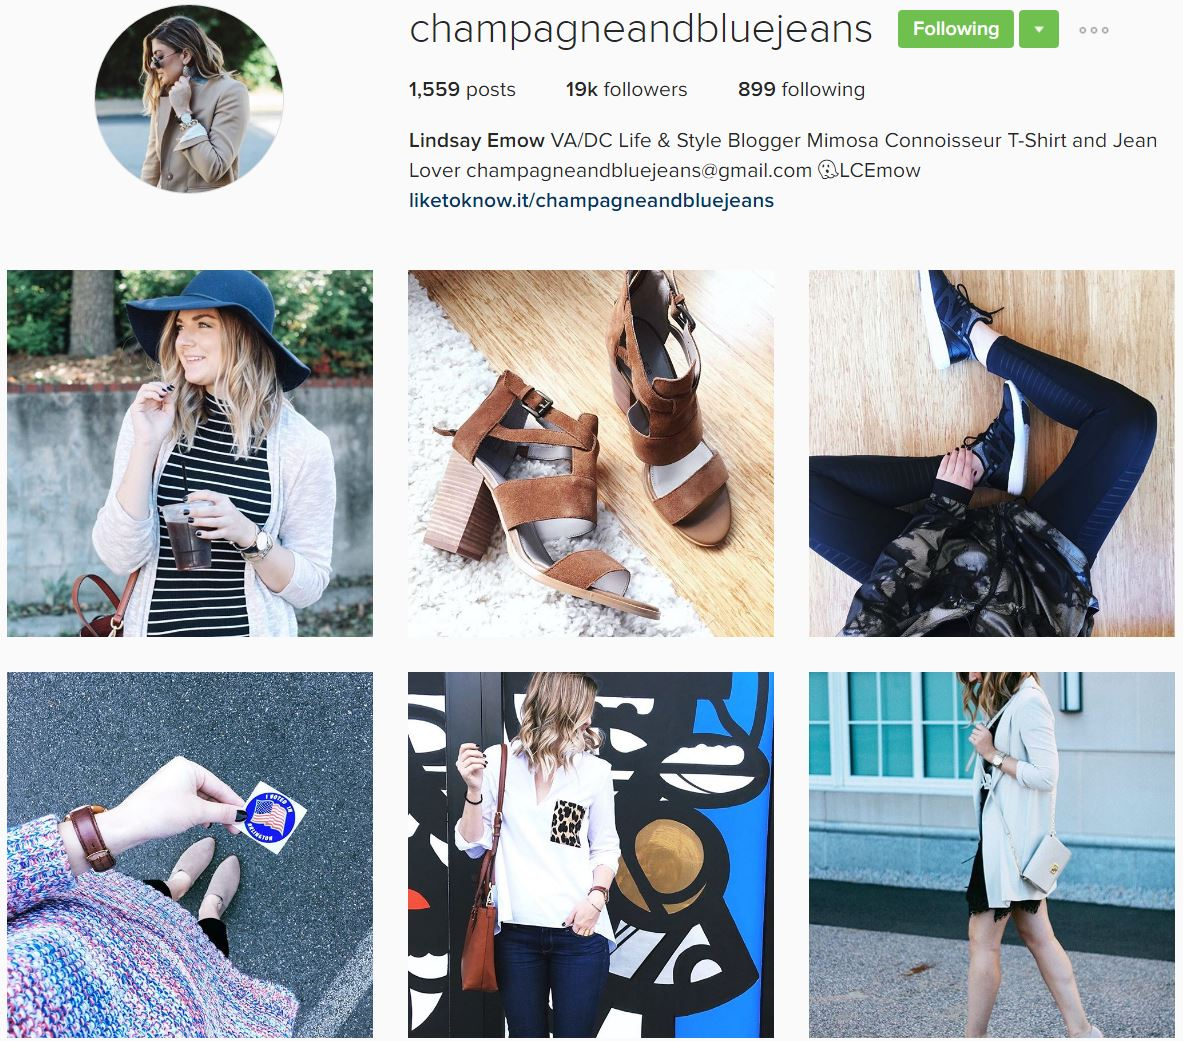 champagne-and-blue-jeans-instagram-feed